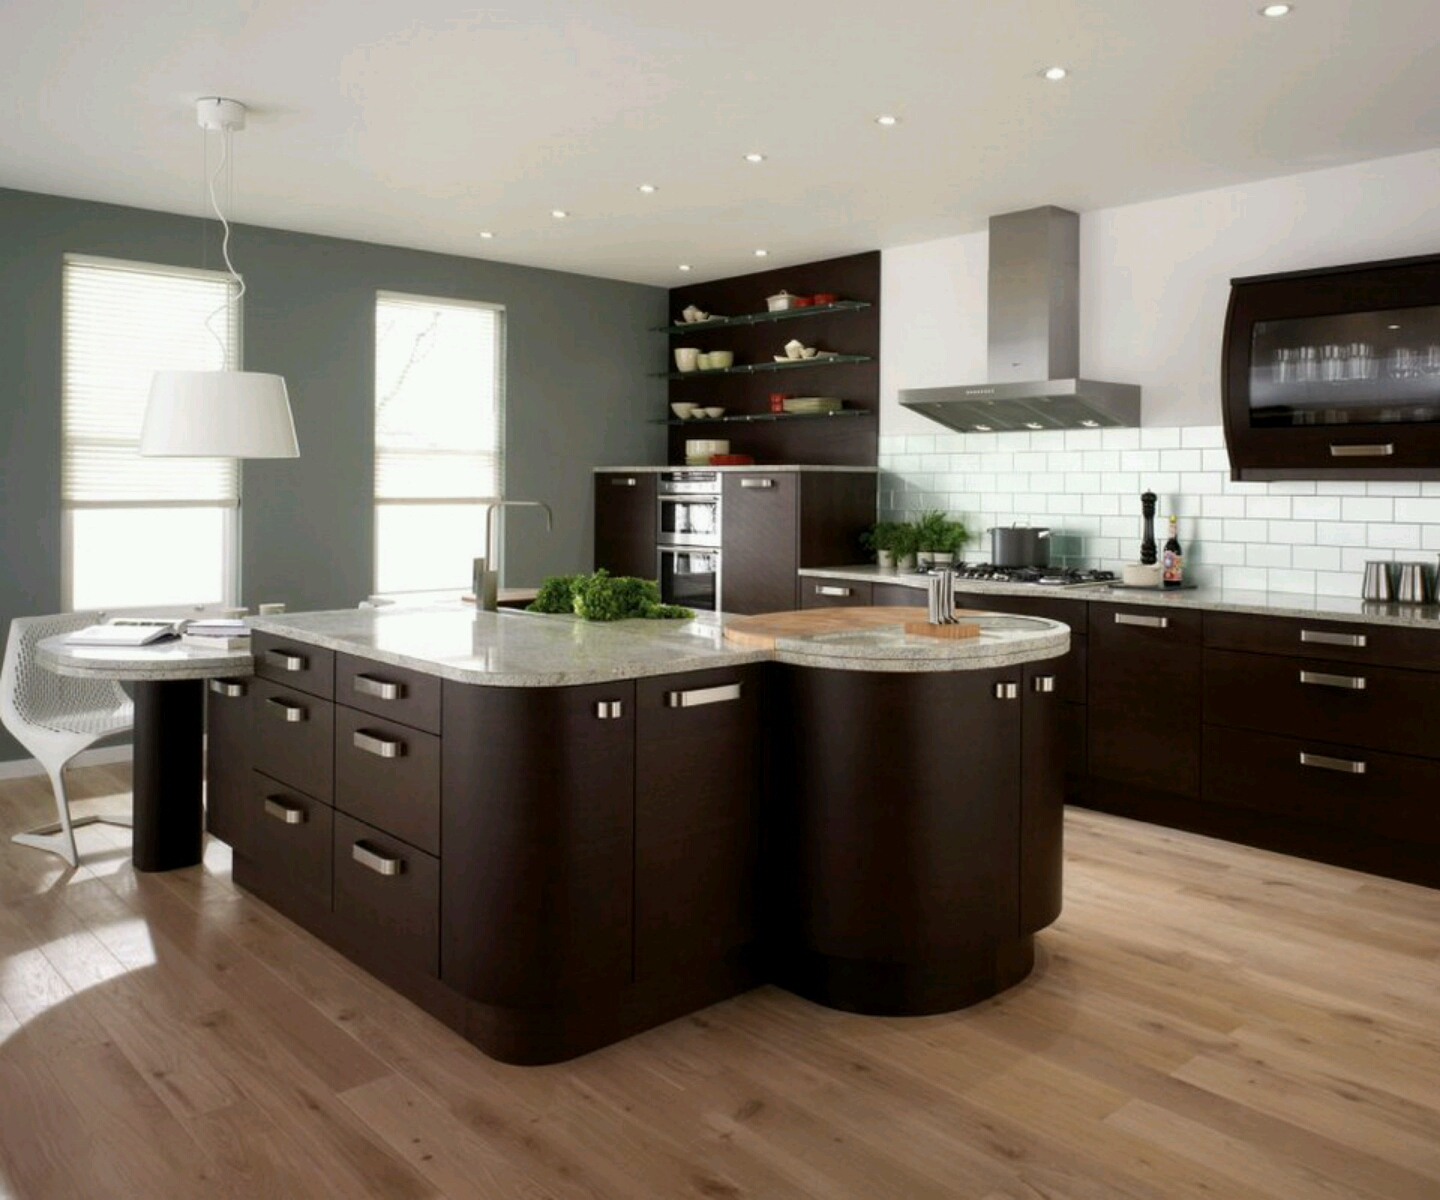 kitchen cabinets design and ideas photo - 1